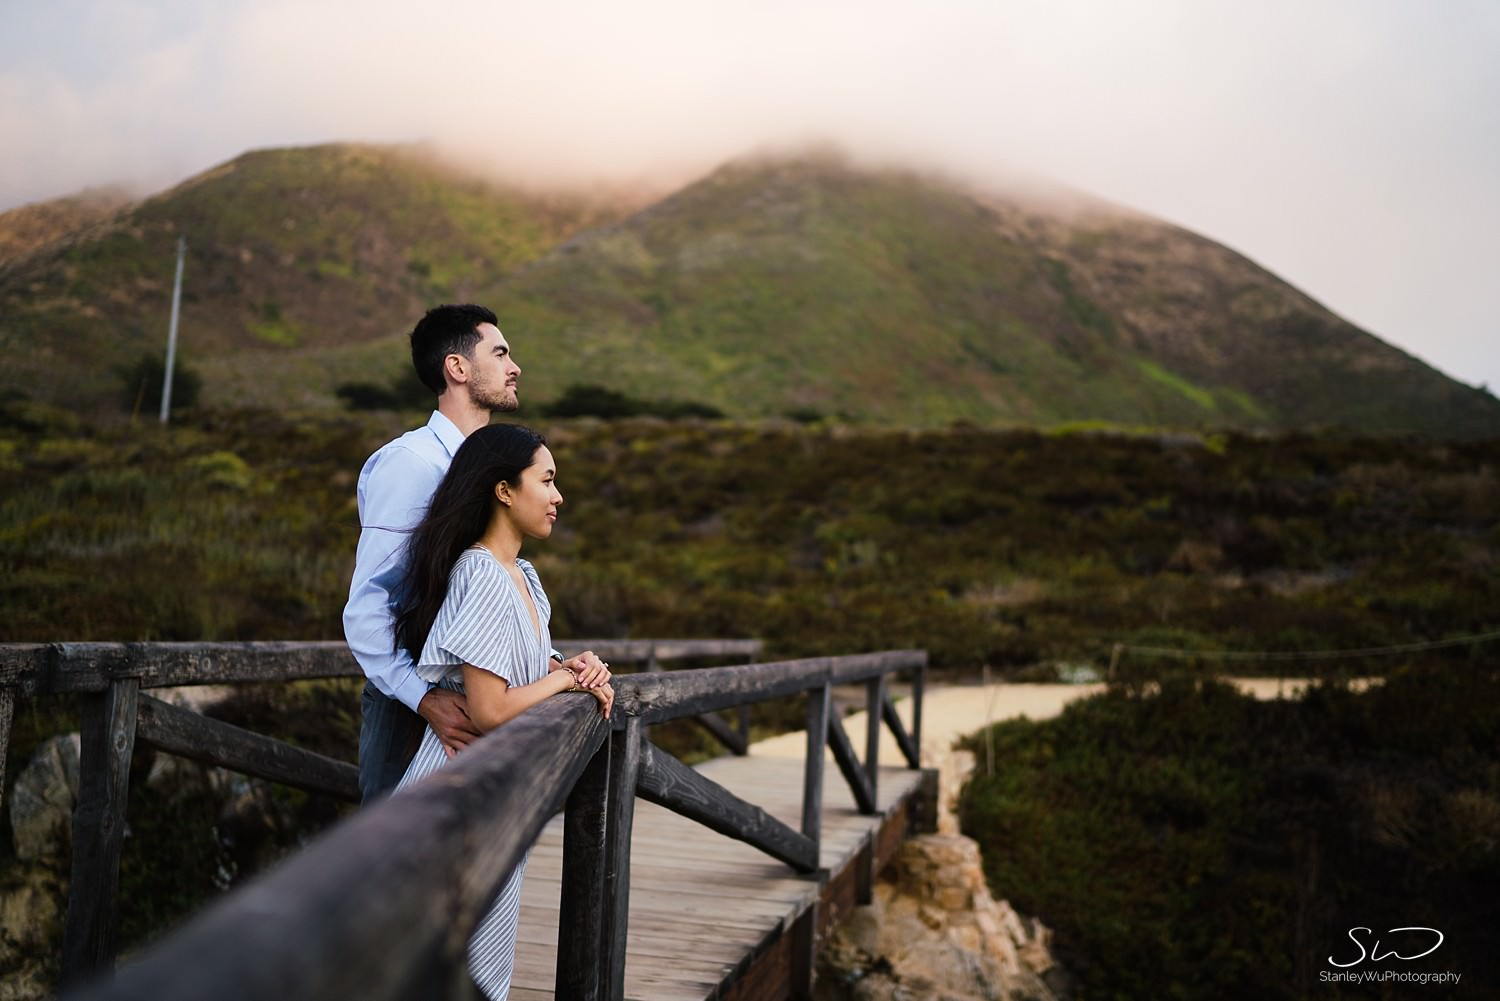 big-sur-travel-adventure-engagement-session_0063.jpg